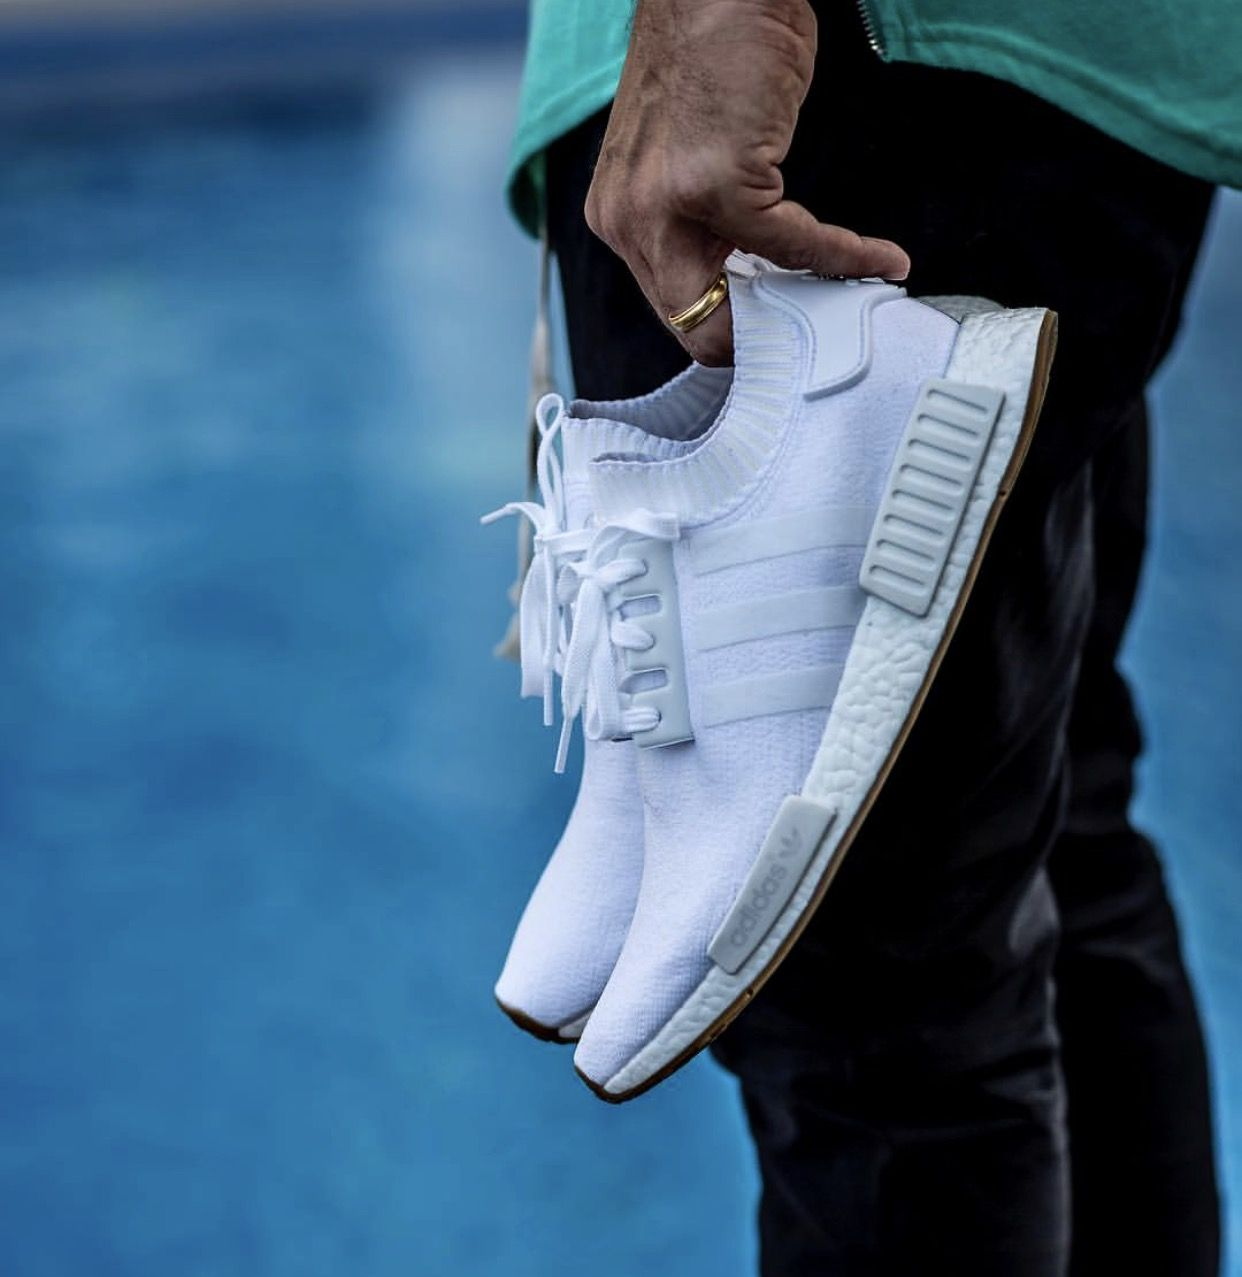 Adidas Nmd R1 Pk White Gum Sole Edition Sneakers Shoes Outfit